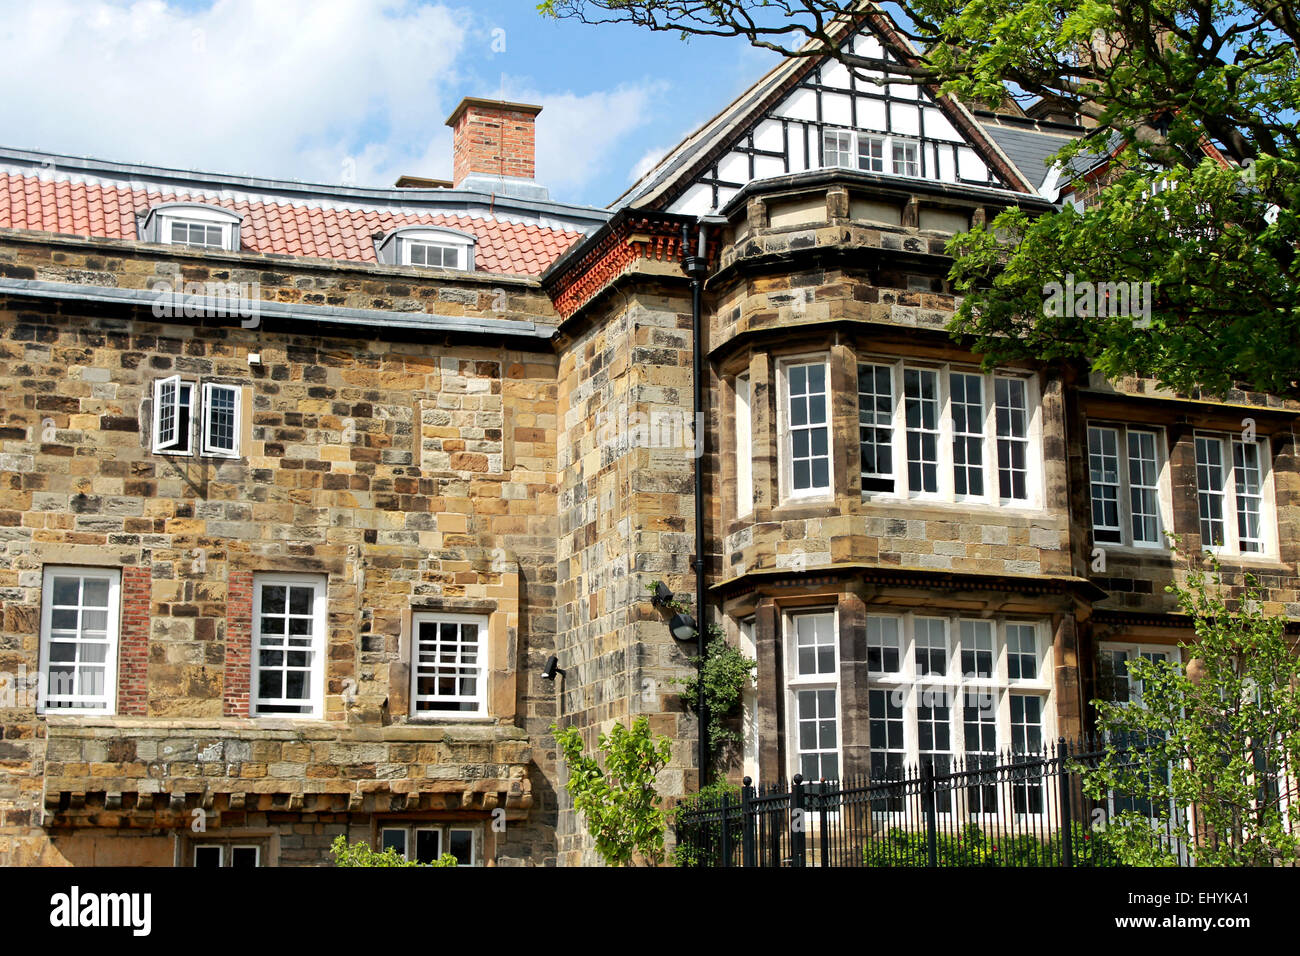 Exterior of an old English stately home or manor house in North Yorkshire, England. - Stock Image